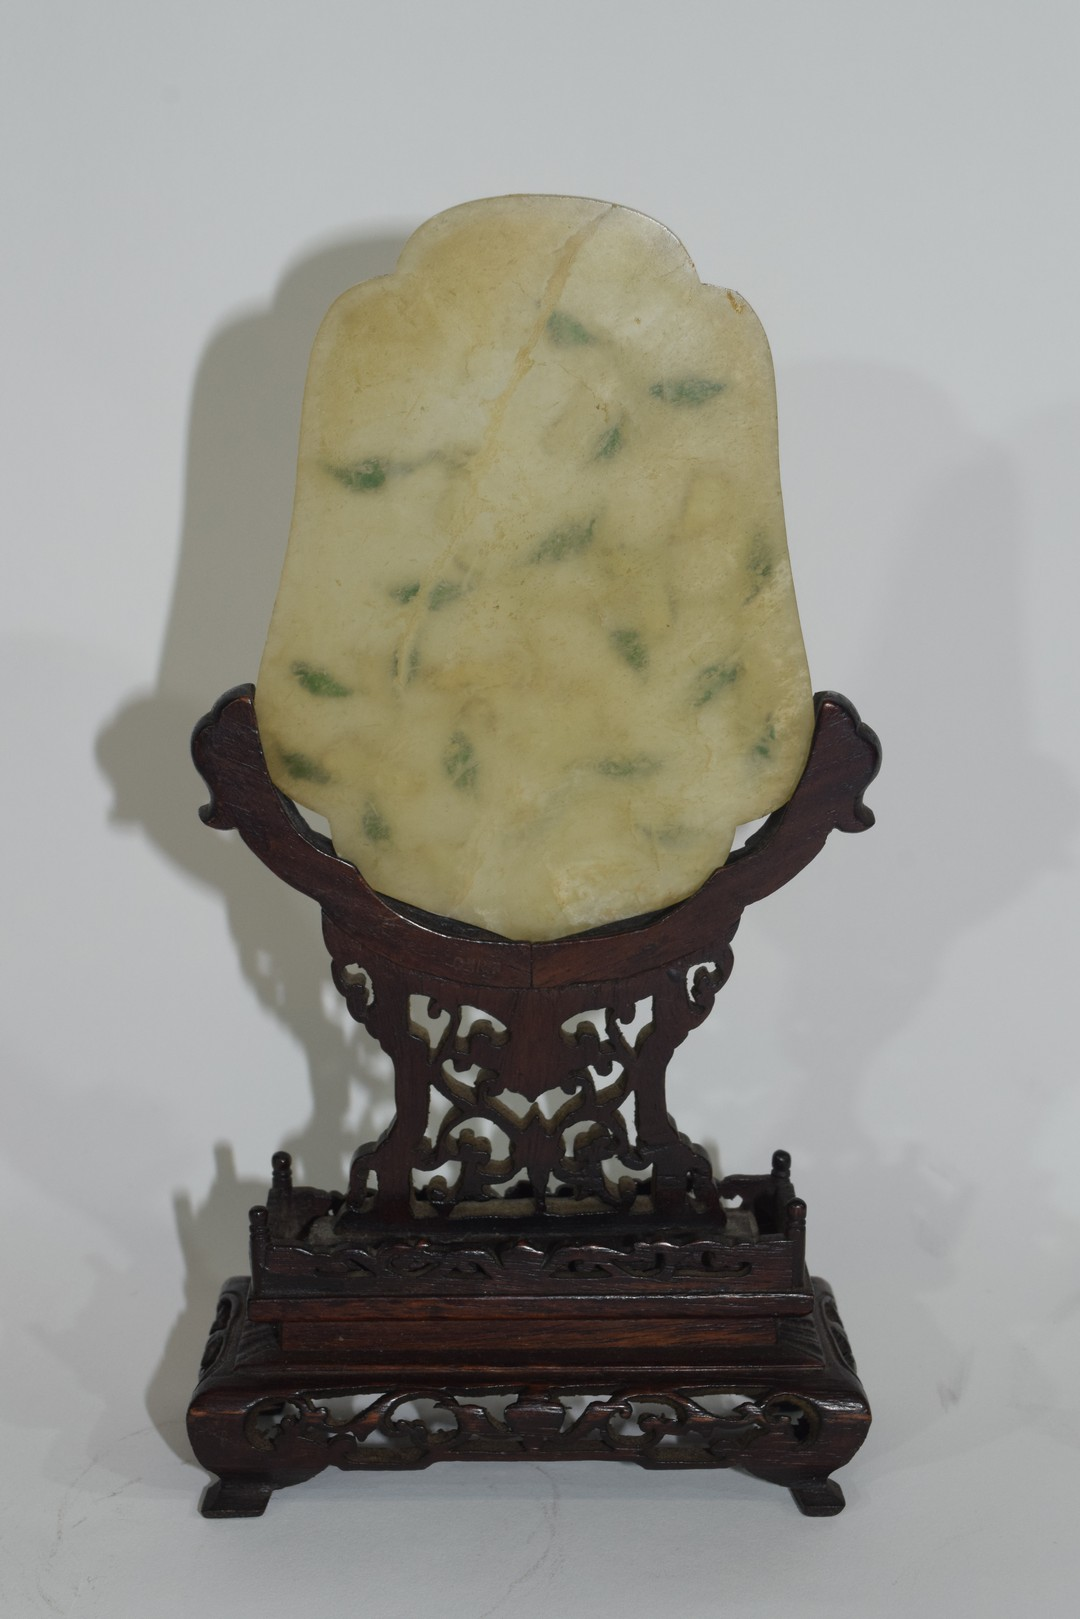 Piece of quartz with floral green decoration - Image 2 of 5